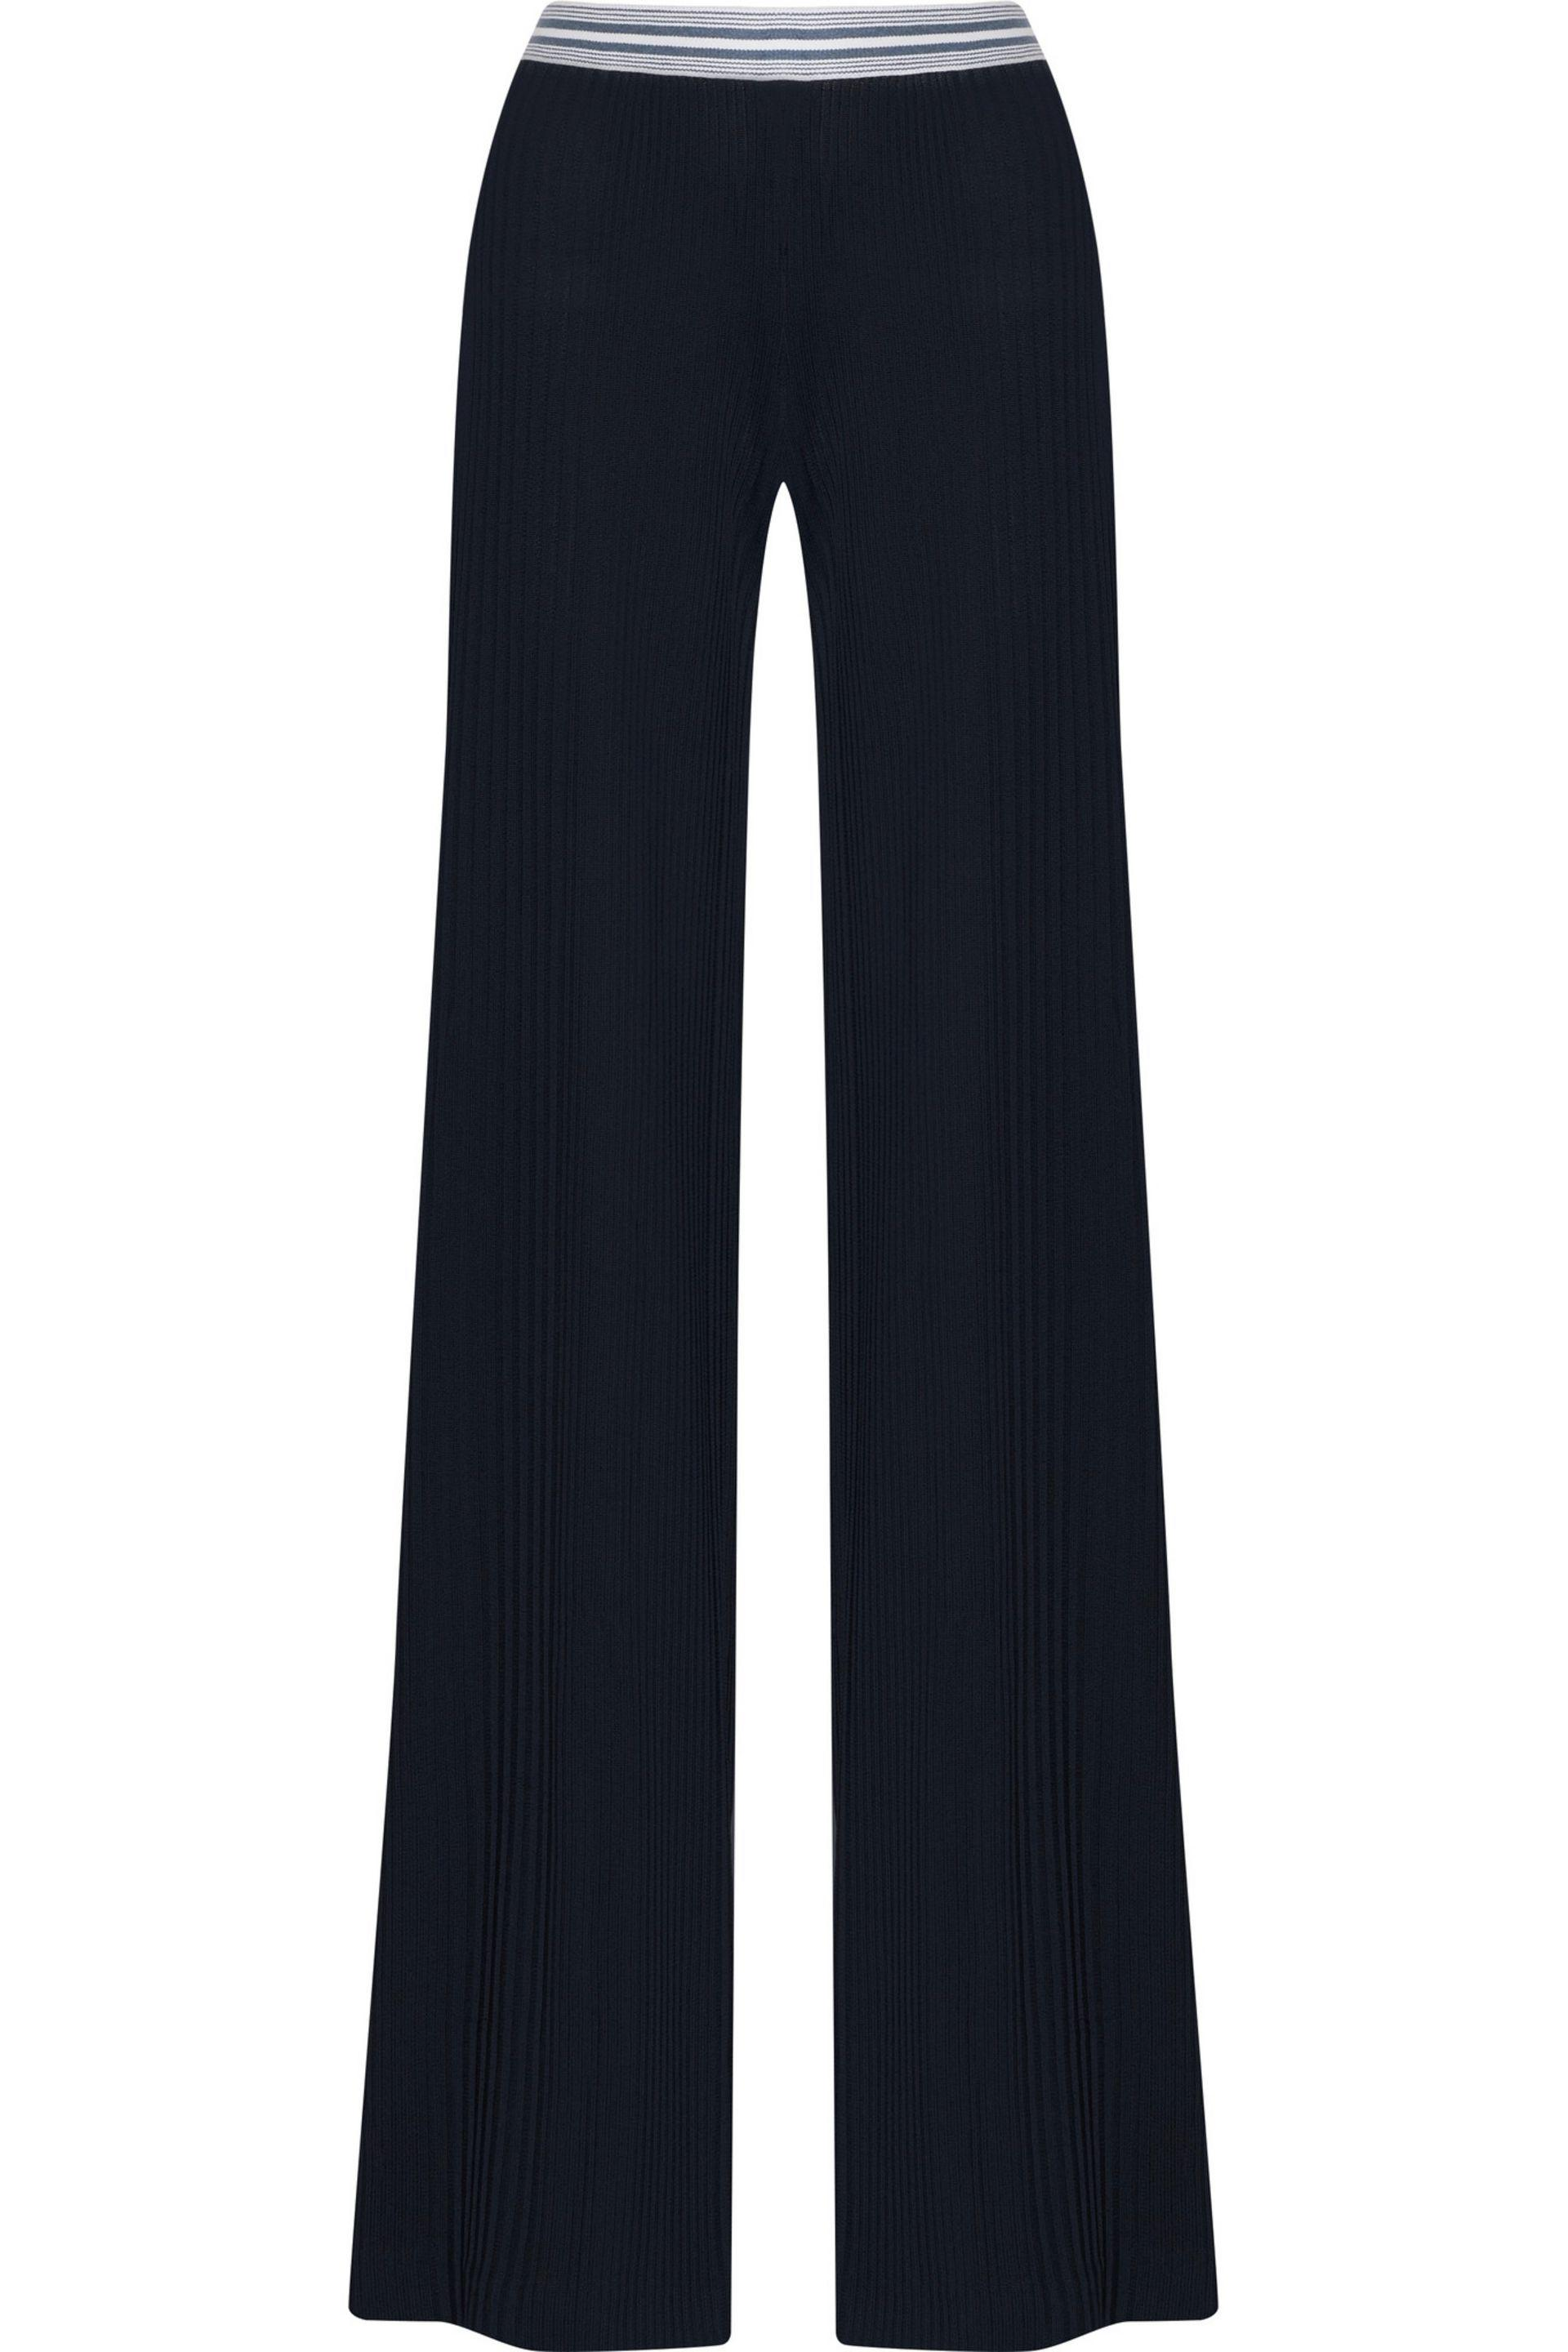 7a780d1a Balmain Ribbed-knit Wide-leg Pants in Blue - Lyst